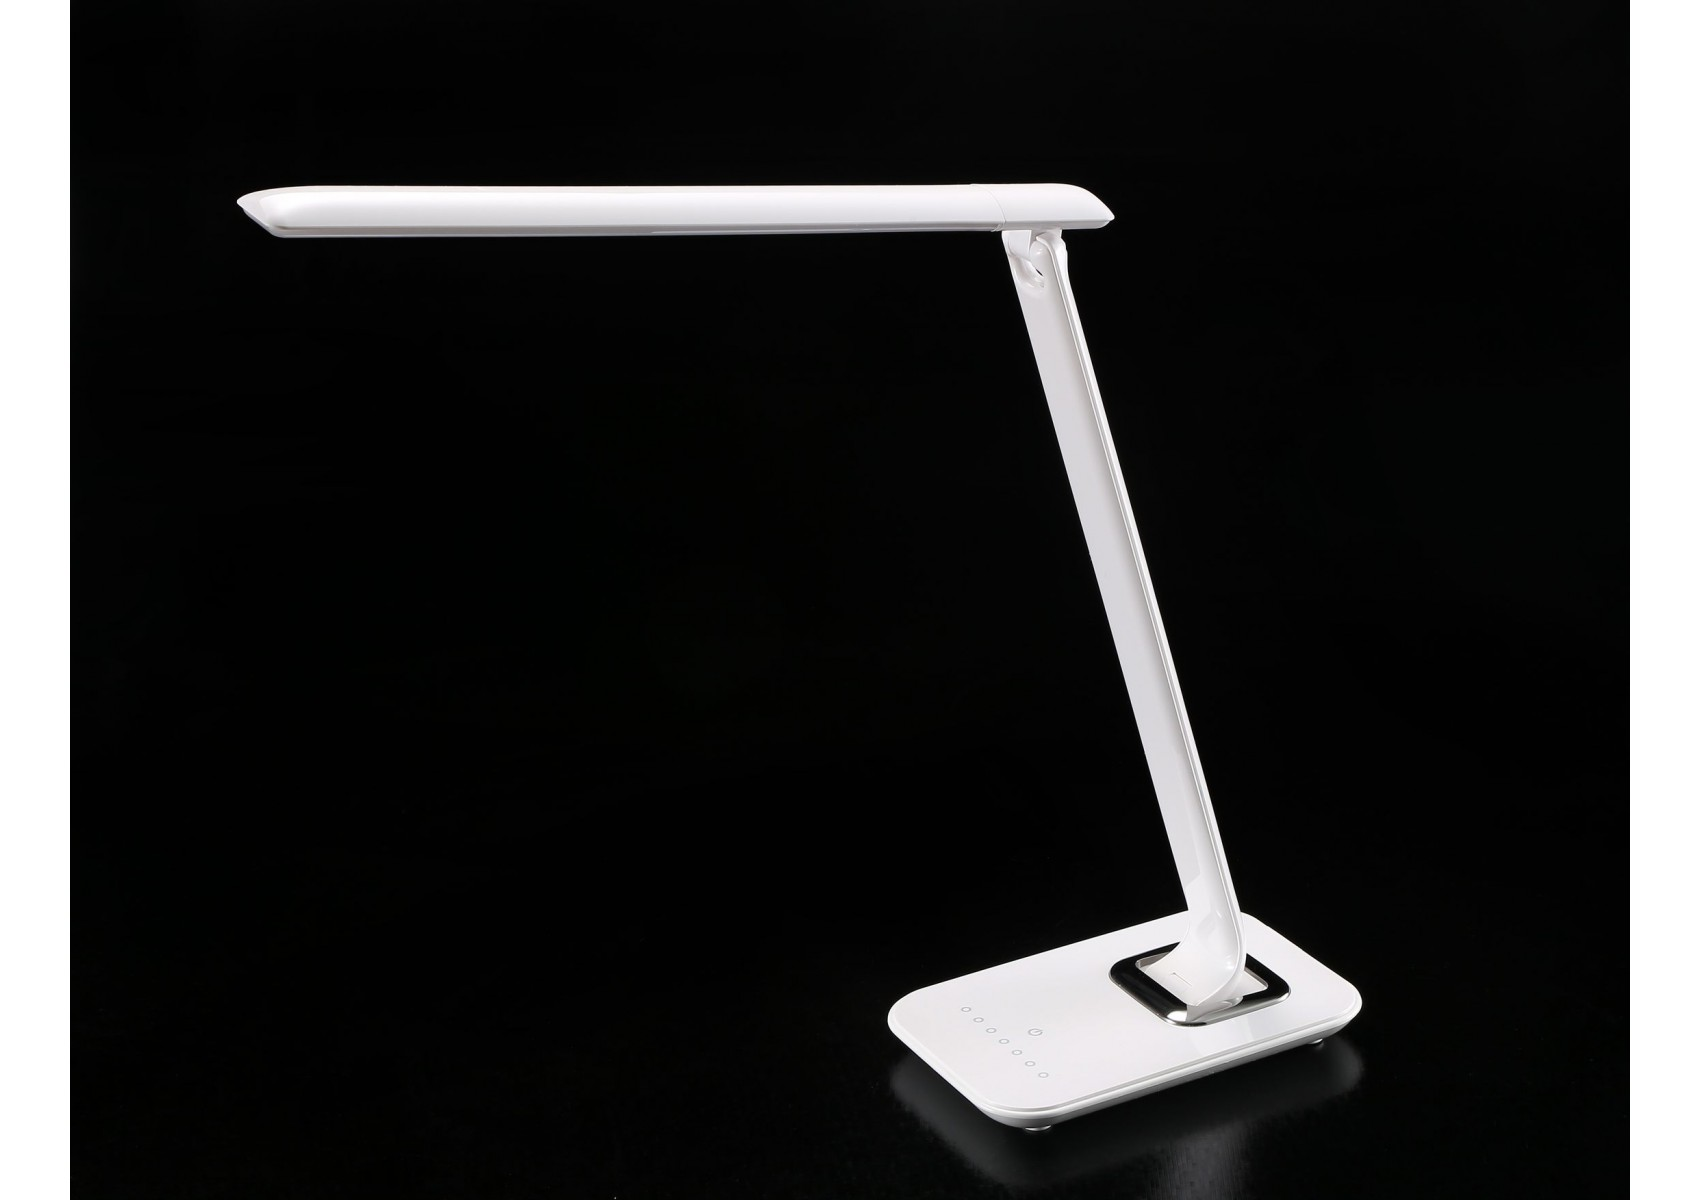 lampe de bureau led tactile orientable usb bob aluminor. Black Bedroom Furniture Sets. Home Design Ideas